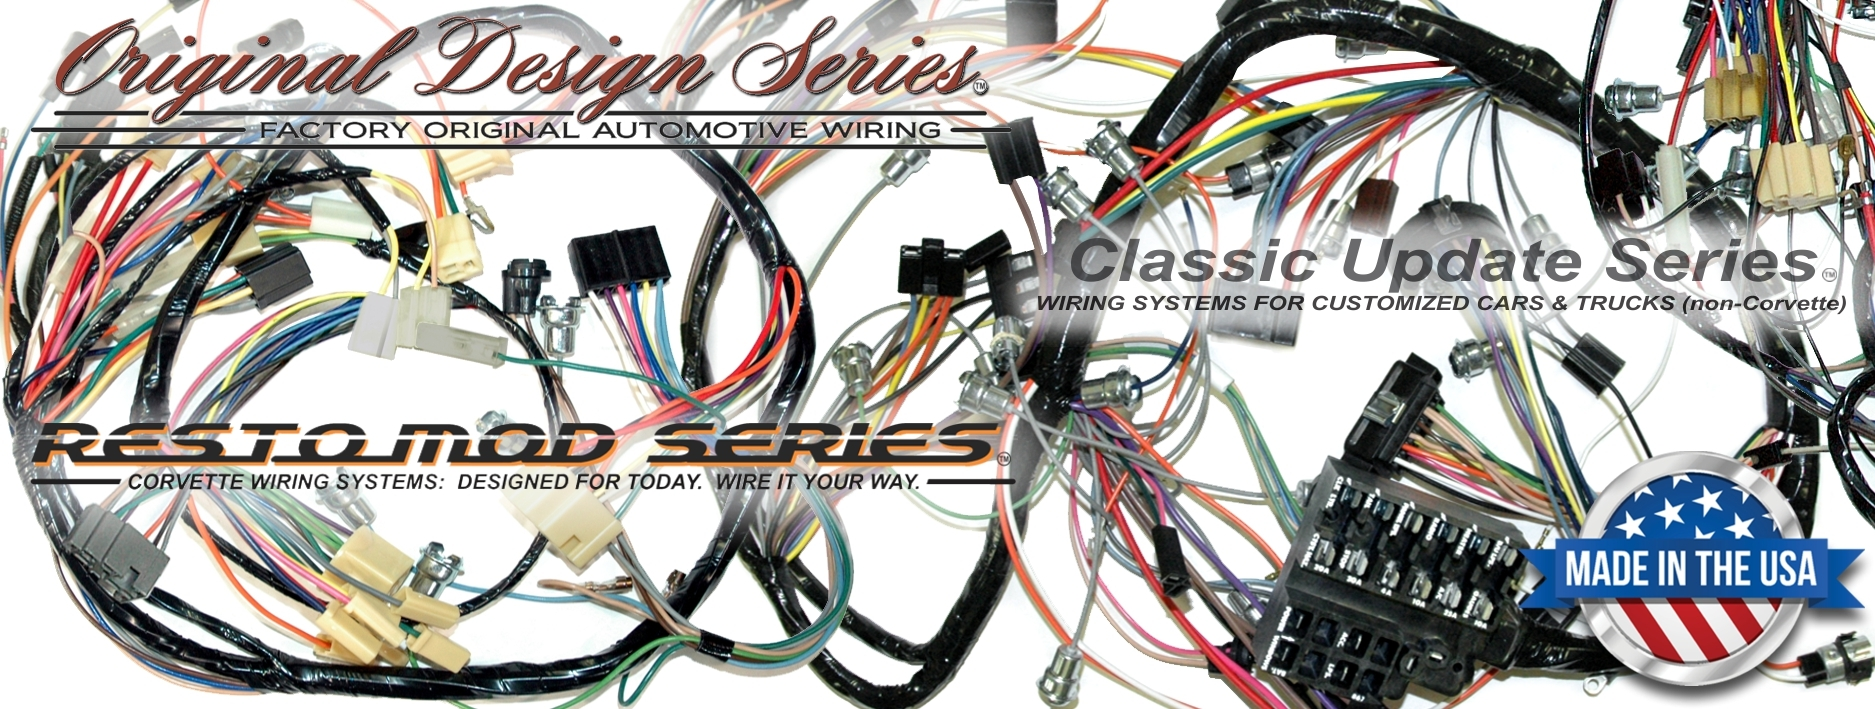 hight resolution of exact oem reproduction wiring harnesses and restomod wiring systems 1971 trans am 1977 tran am wiring harness